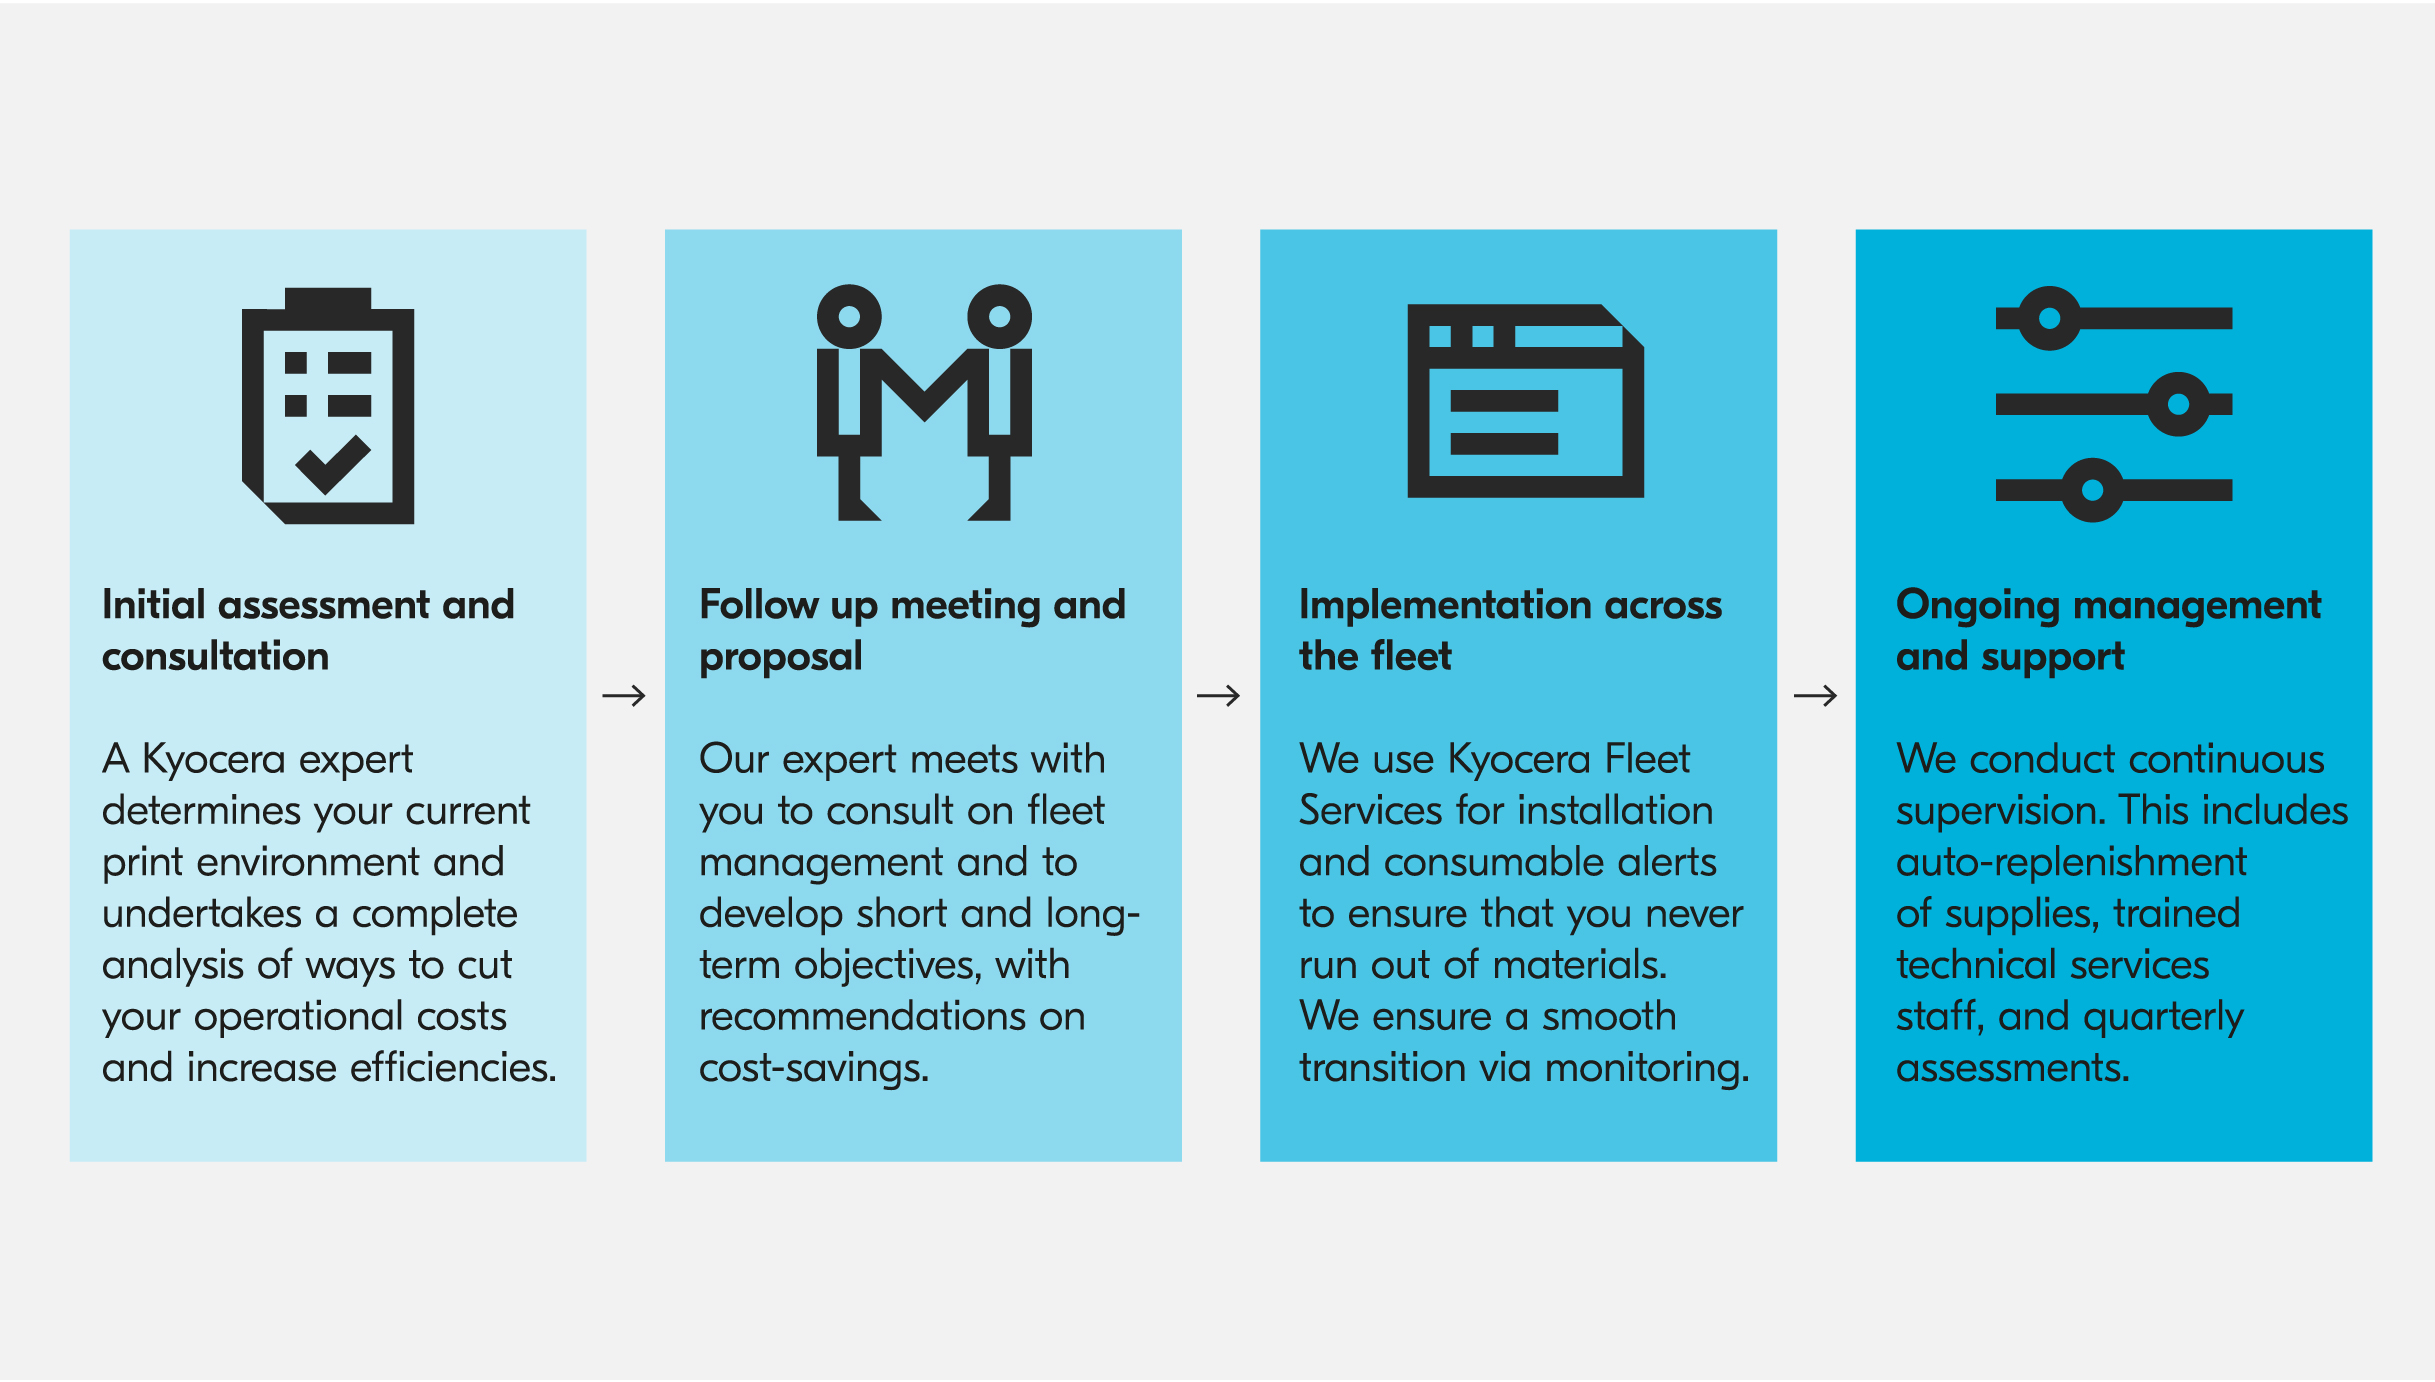 The four steps of Managed Print Services